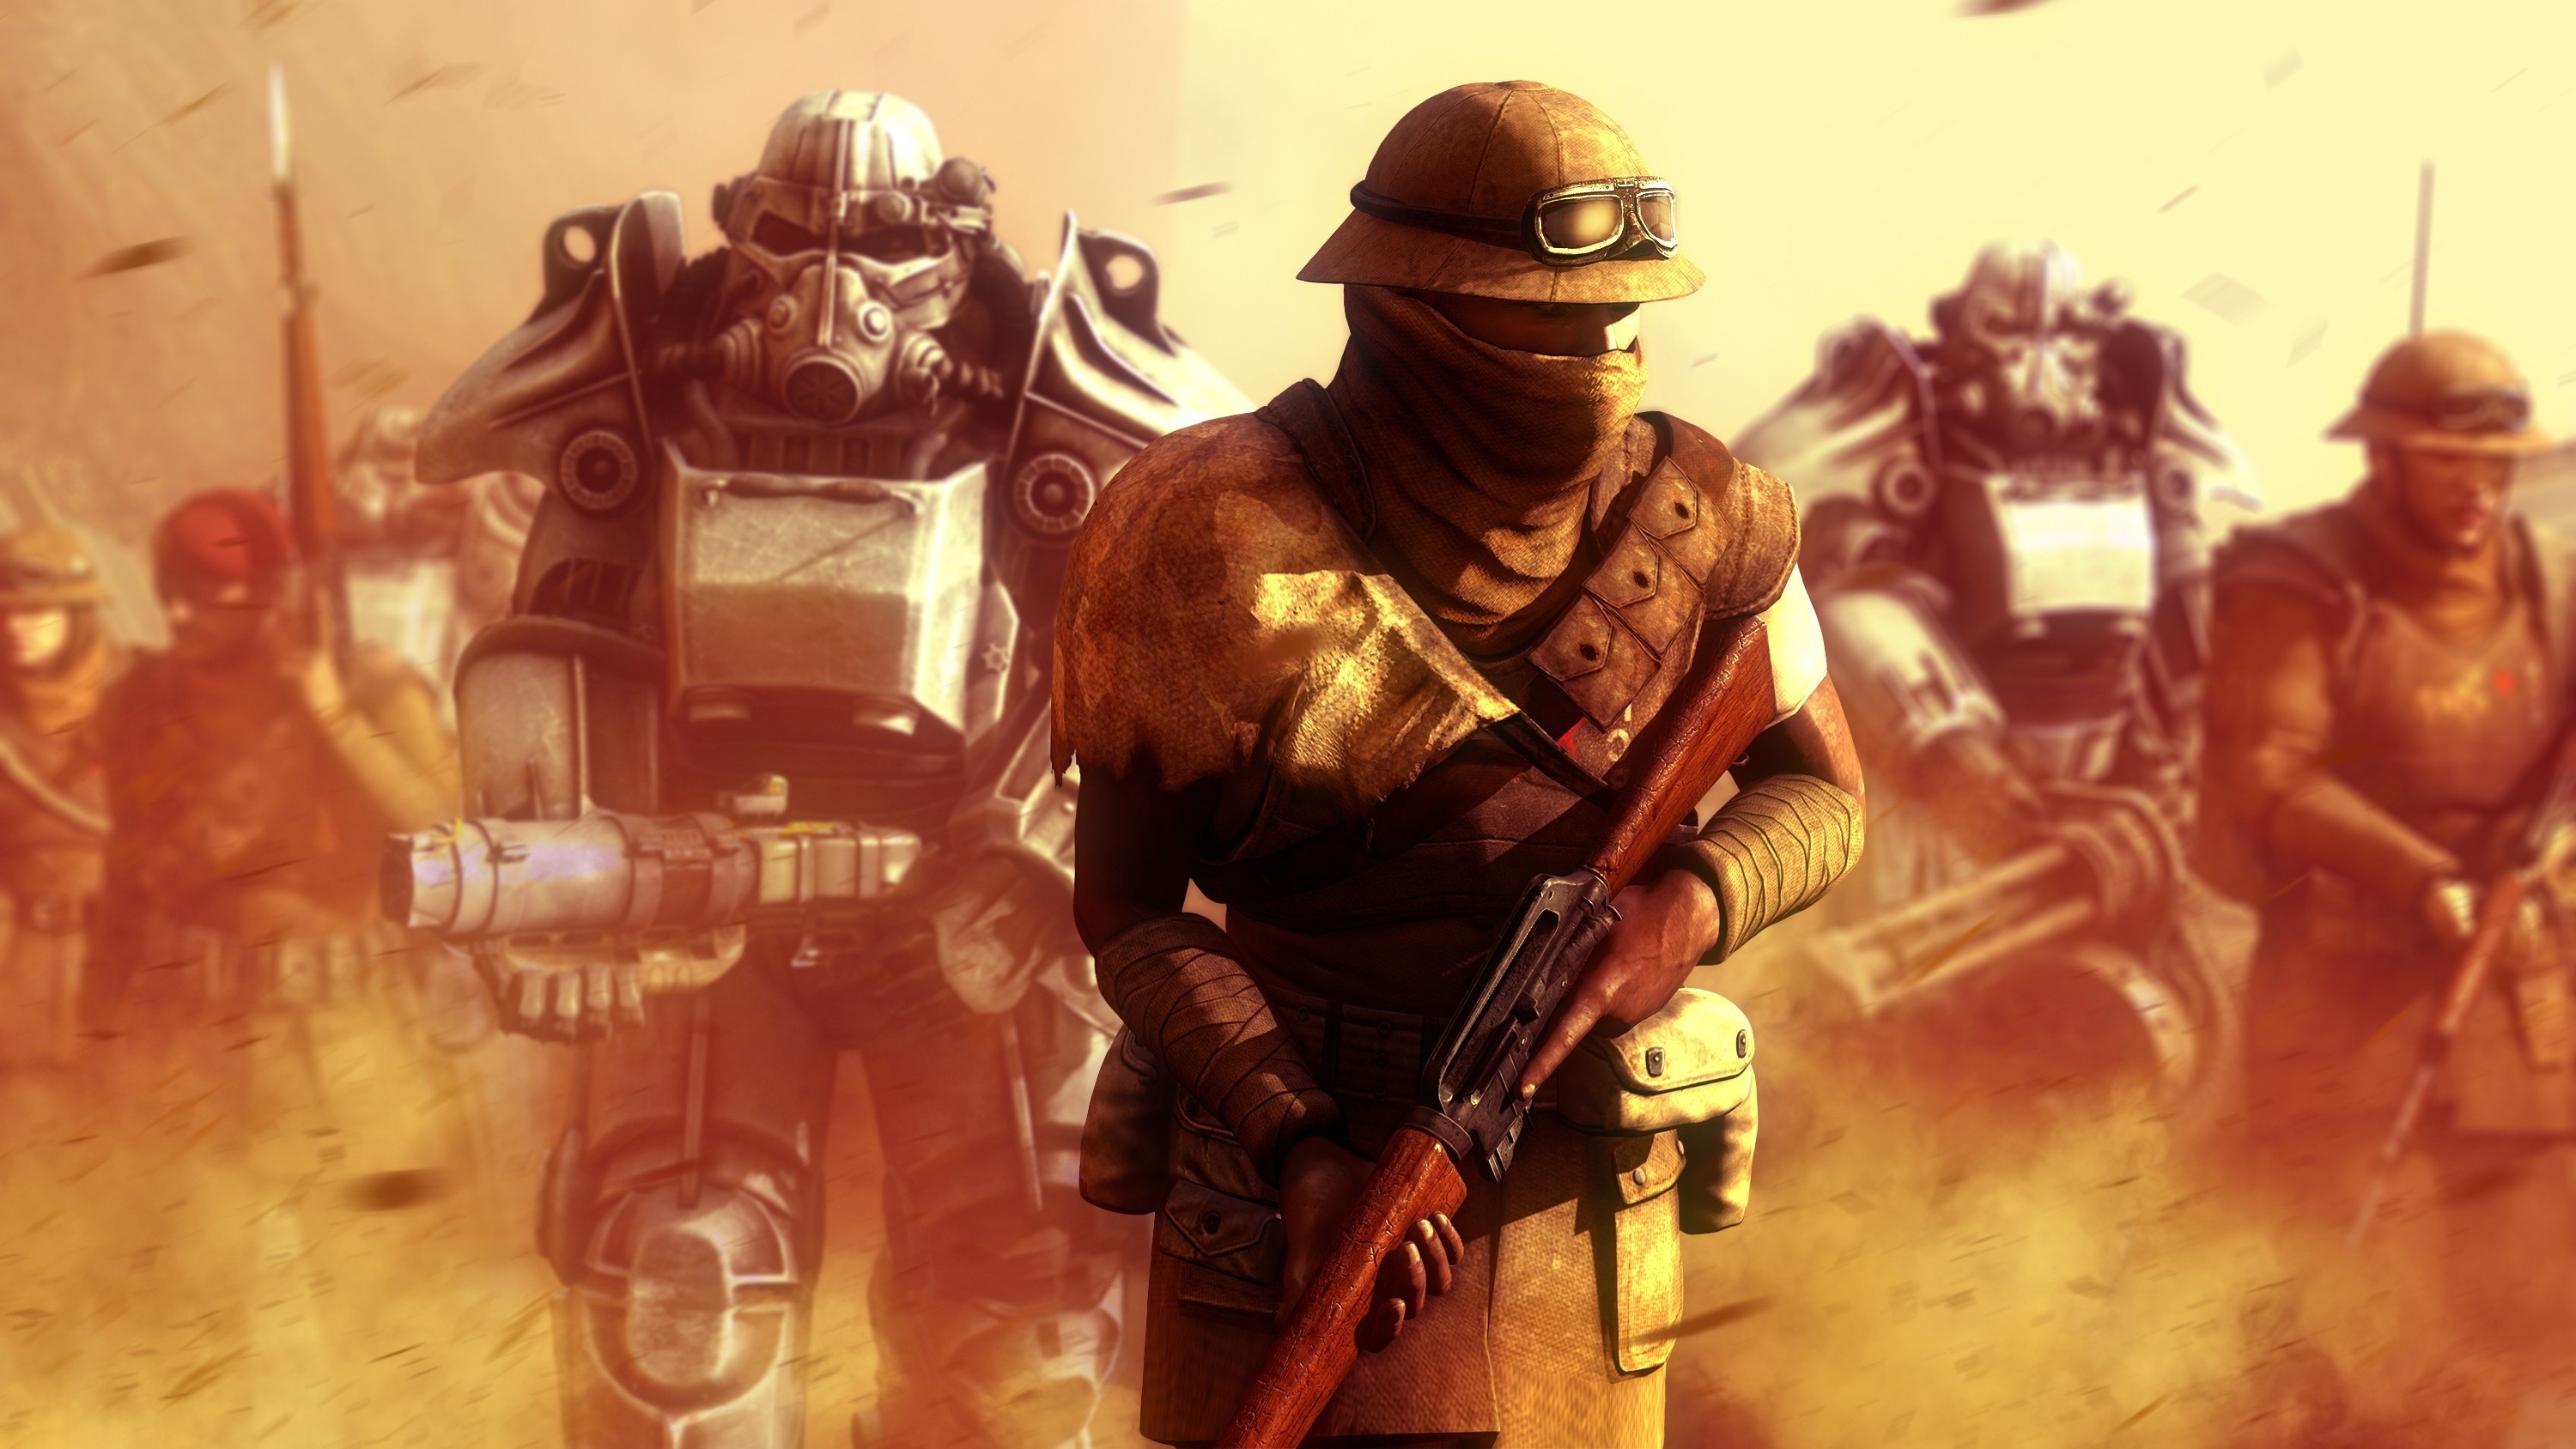 1920x1200 Fallout New Vegas Wallpapers 1080p Wallpaper Cave